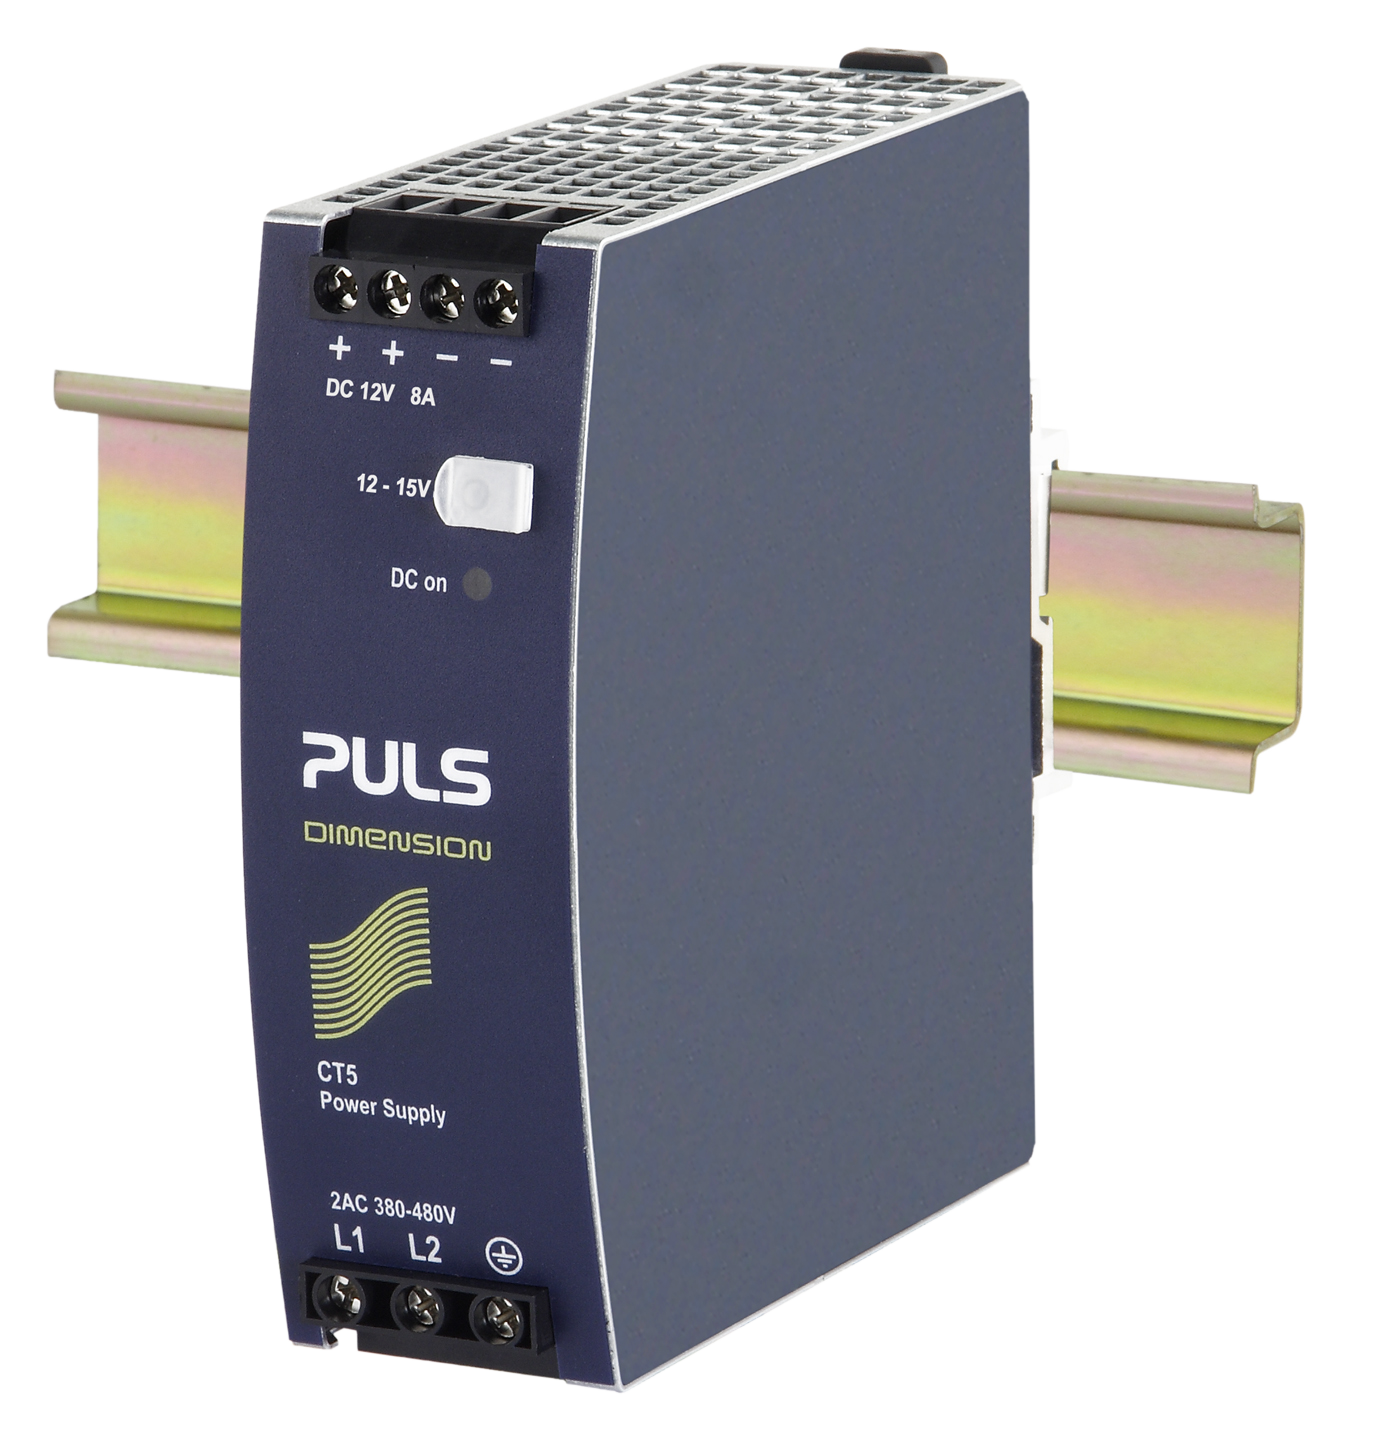 Puls Power Supplies  3-phase Systems 12V, 8A